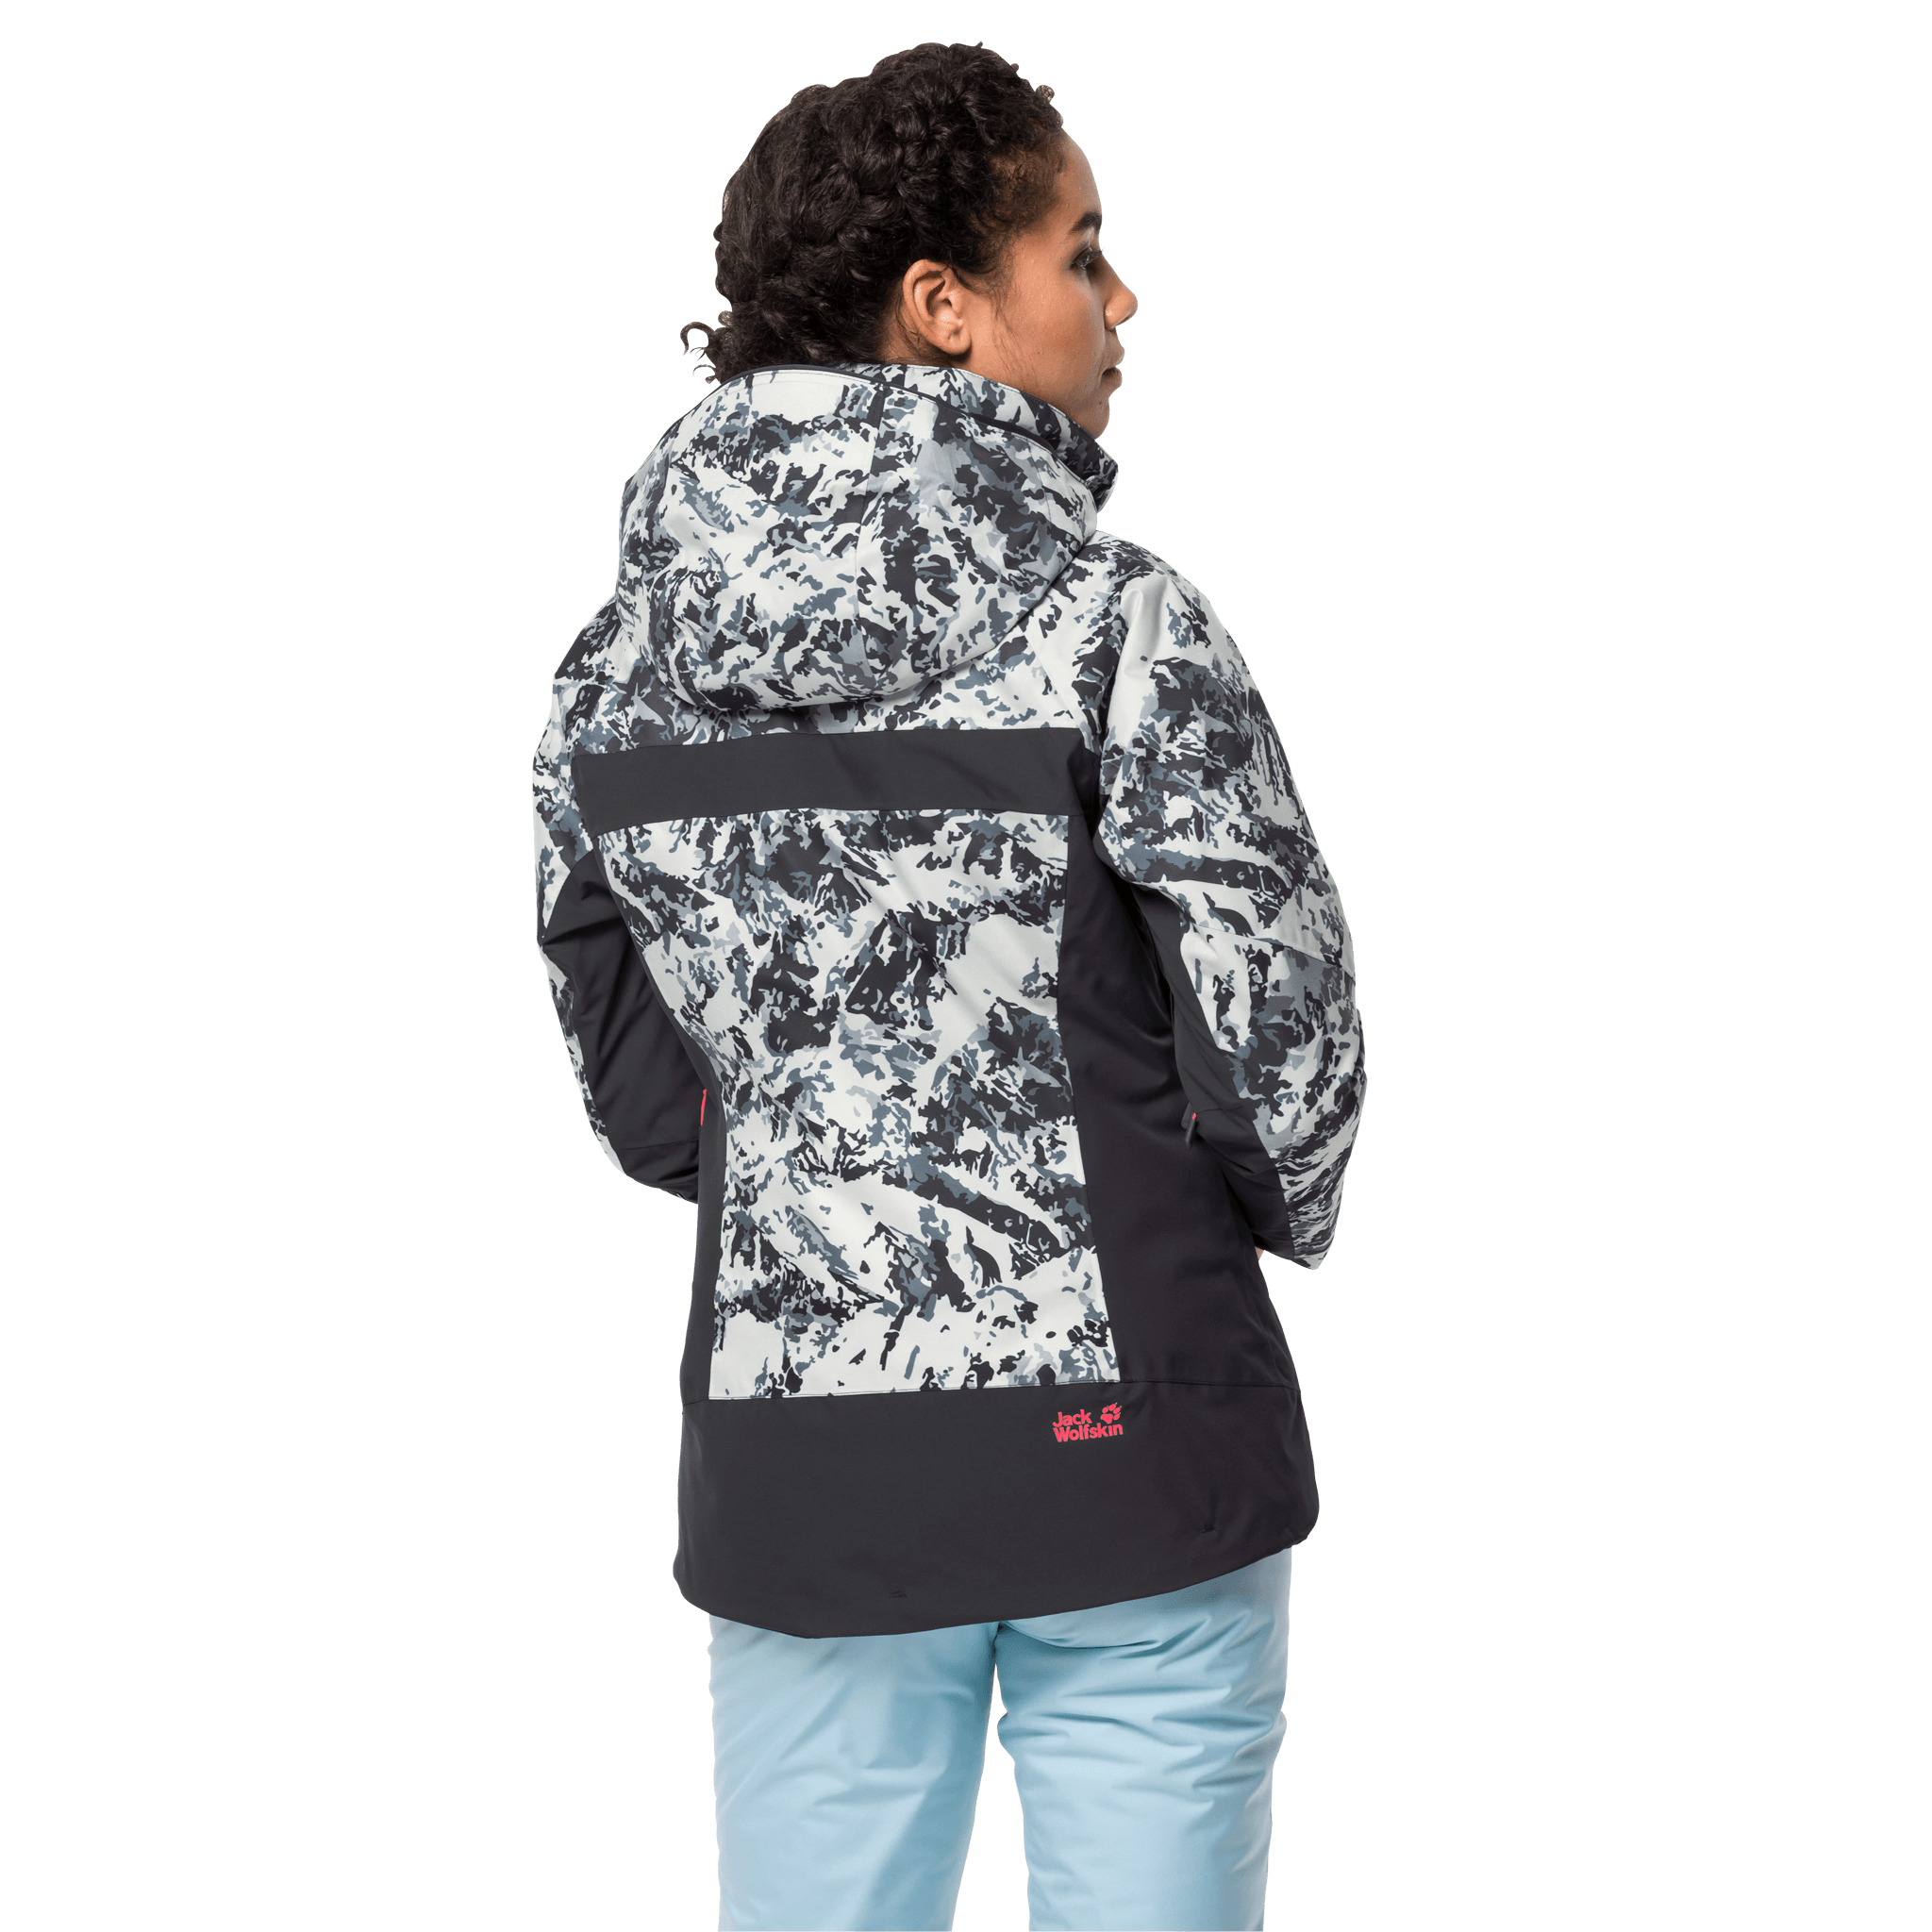 Ebony All Over Women'S Ski Jacket